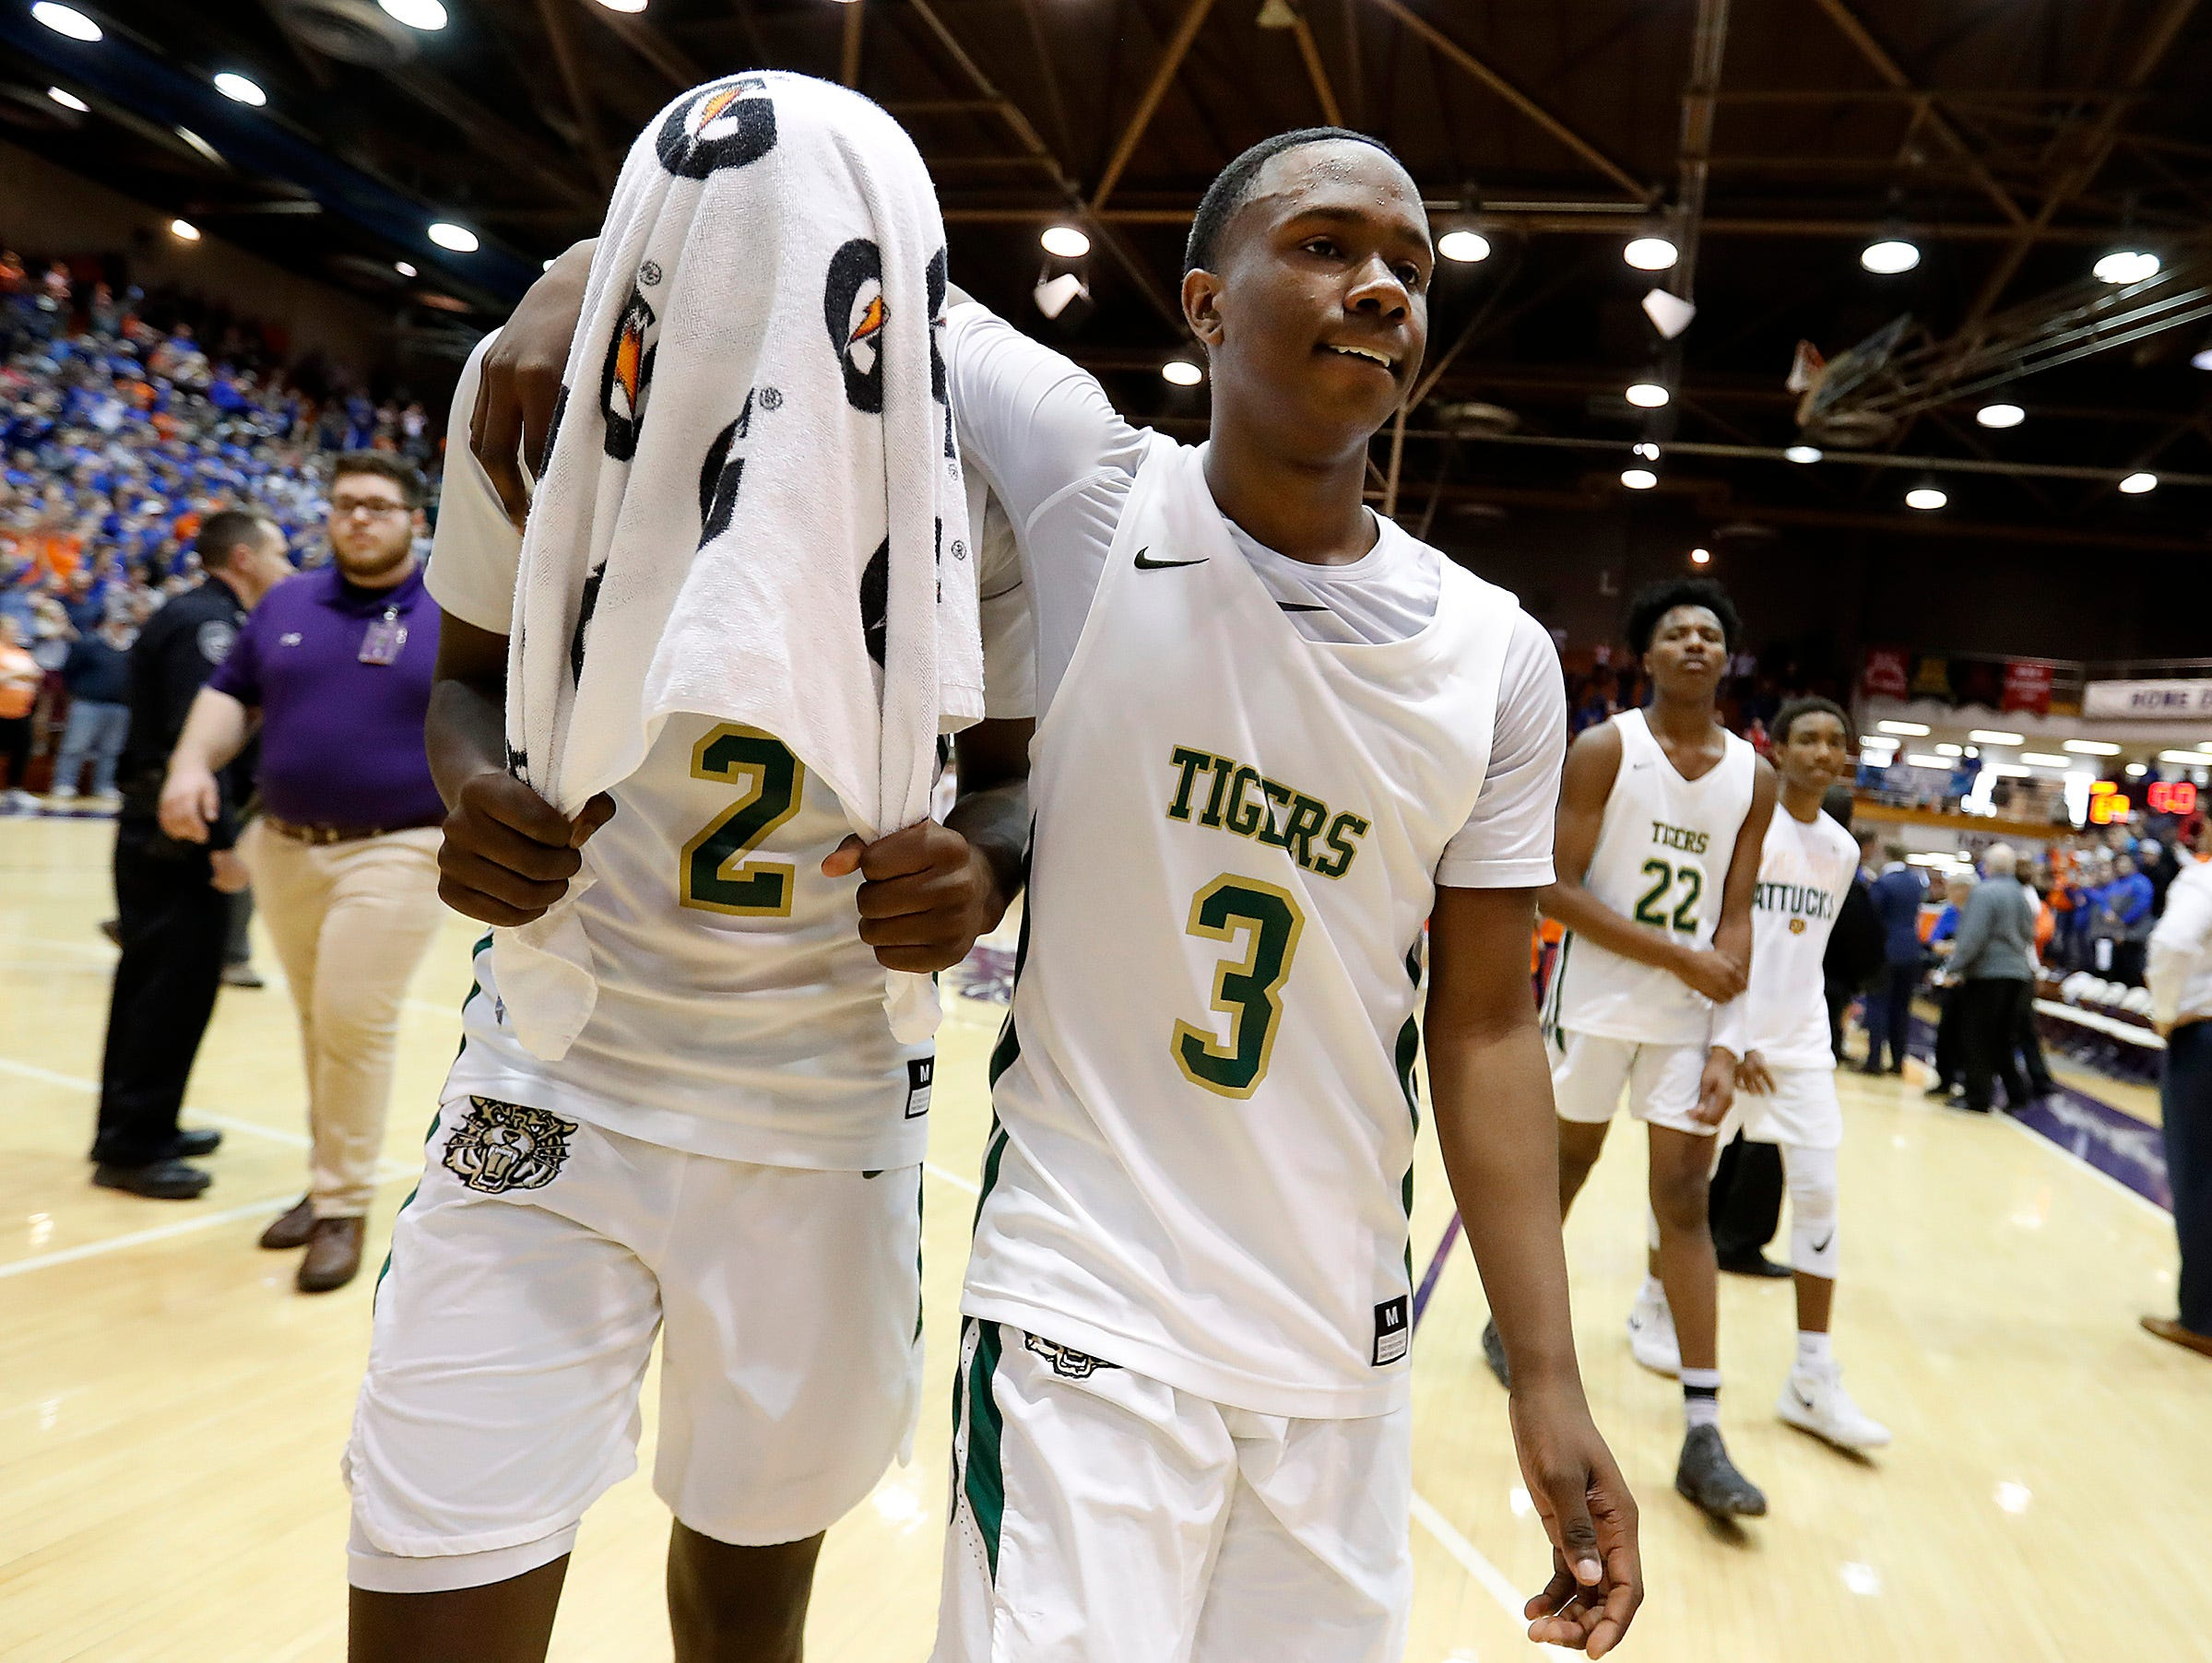 Dejected Crispus Attucks Tigers SinCere McMahon (3) and Donavon Barnett (2) walk off the court following loss to the Silver Creek Dragons in the IHSAA boys' Semi-State basketball game at Seymour High School gym in Seymour IN, on Saturday, Mar. 16, 2019. The Silver Creek Dragons defeated the Crispus Attucks Tigers 72-69.